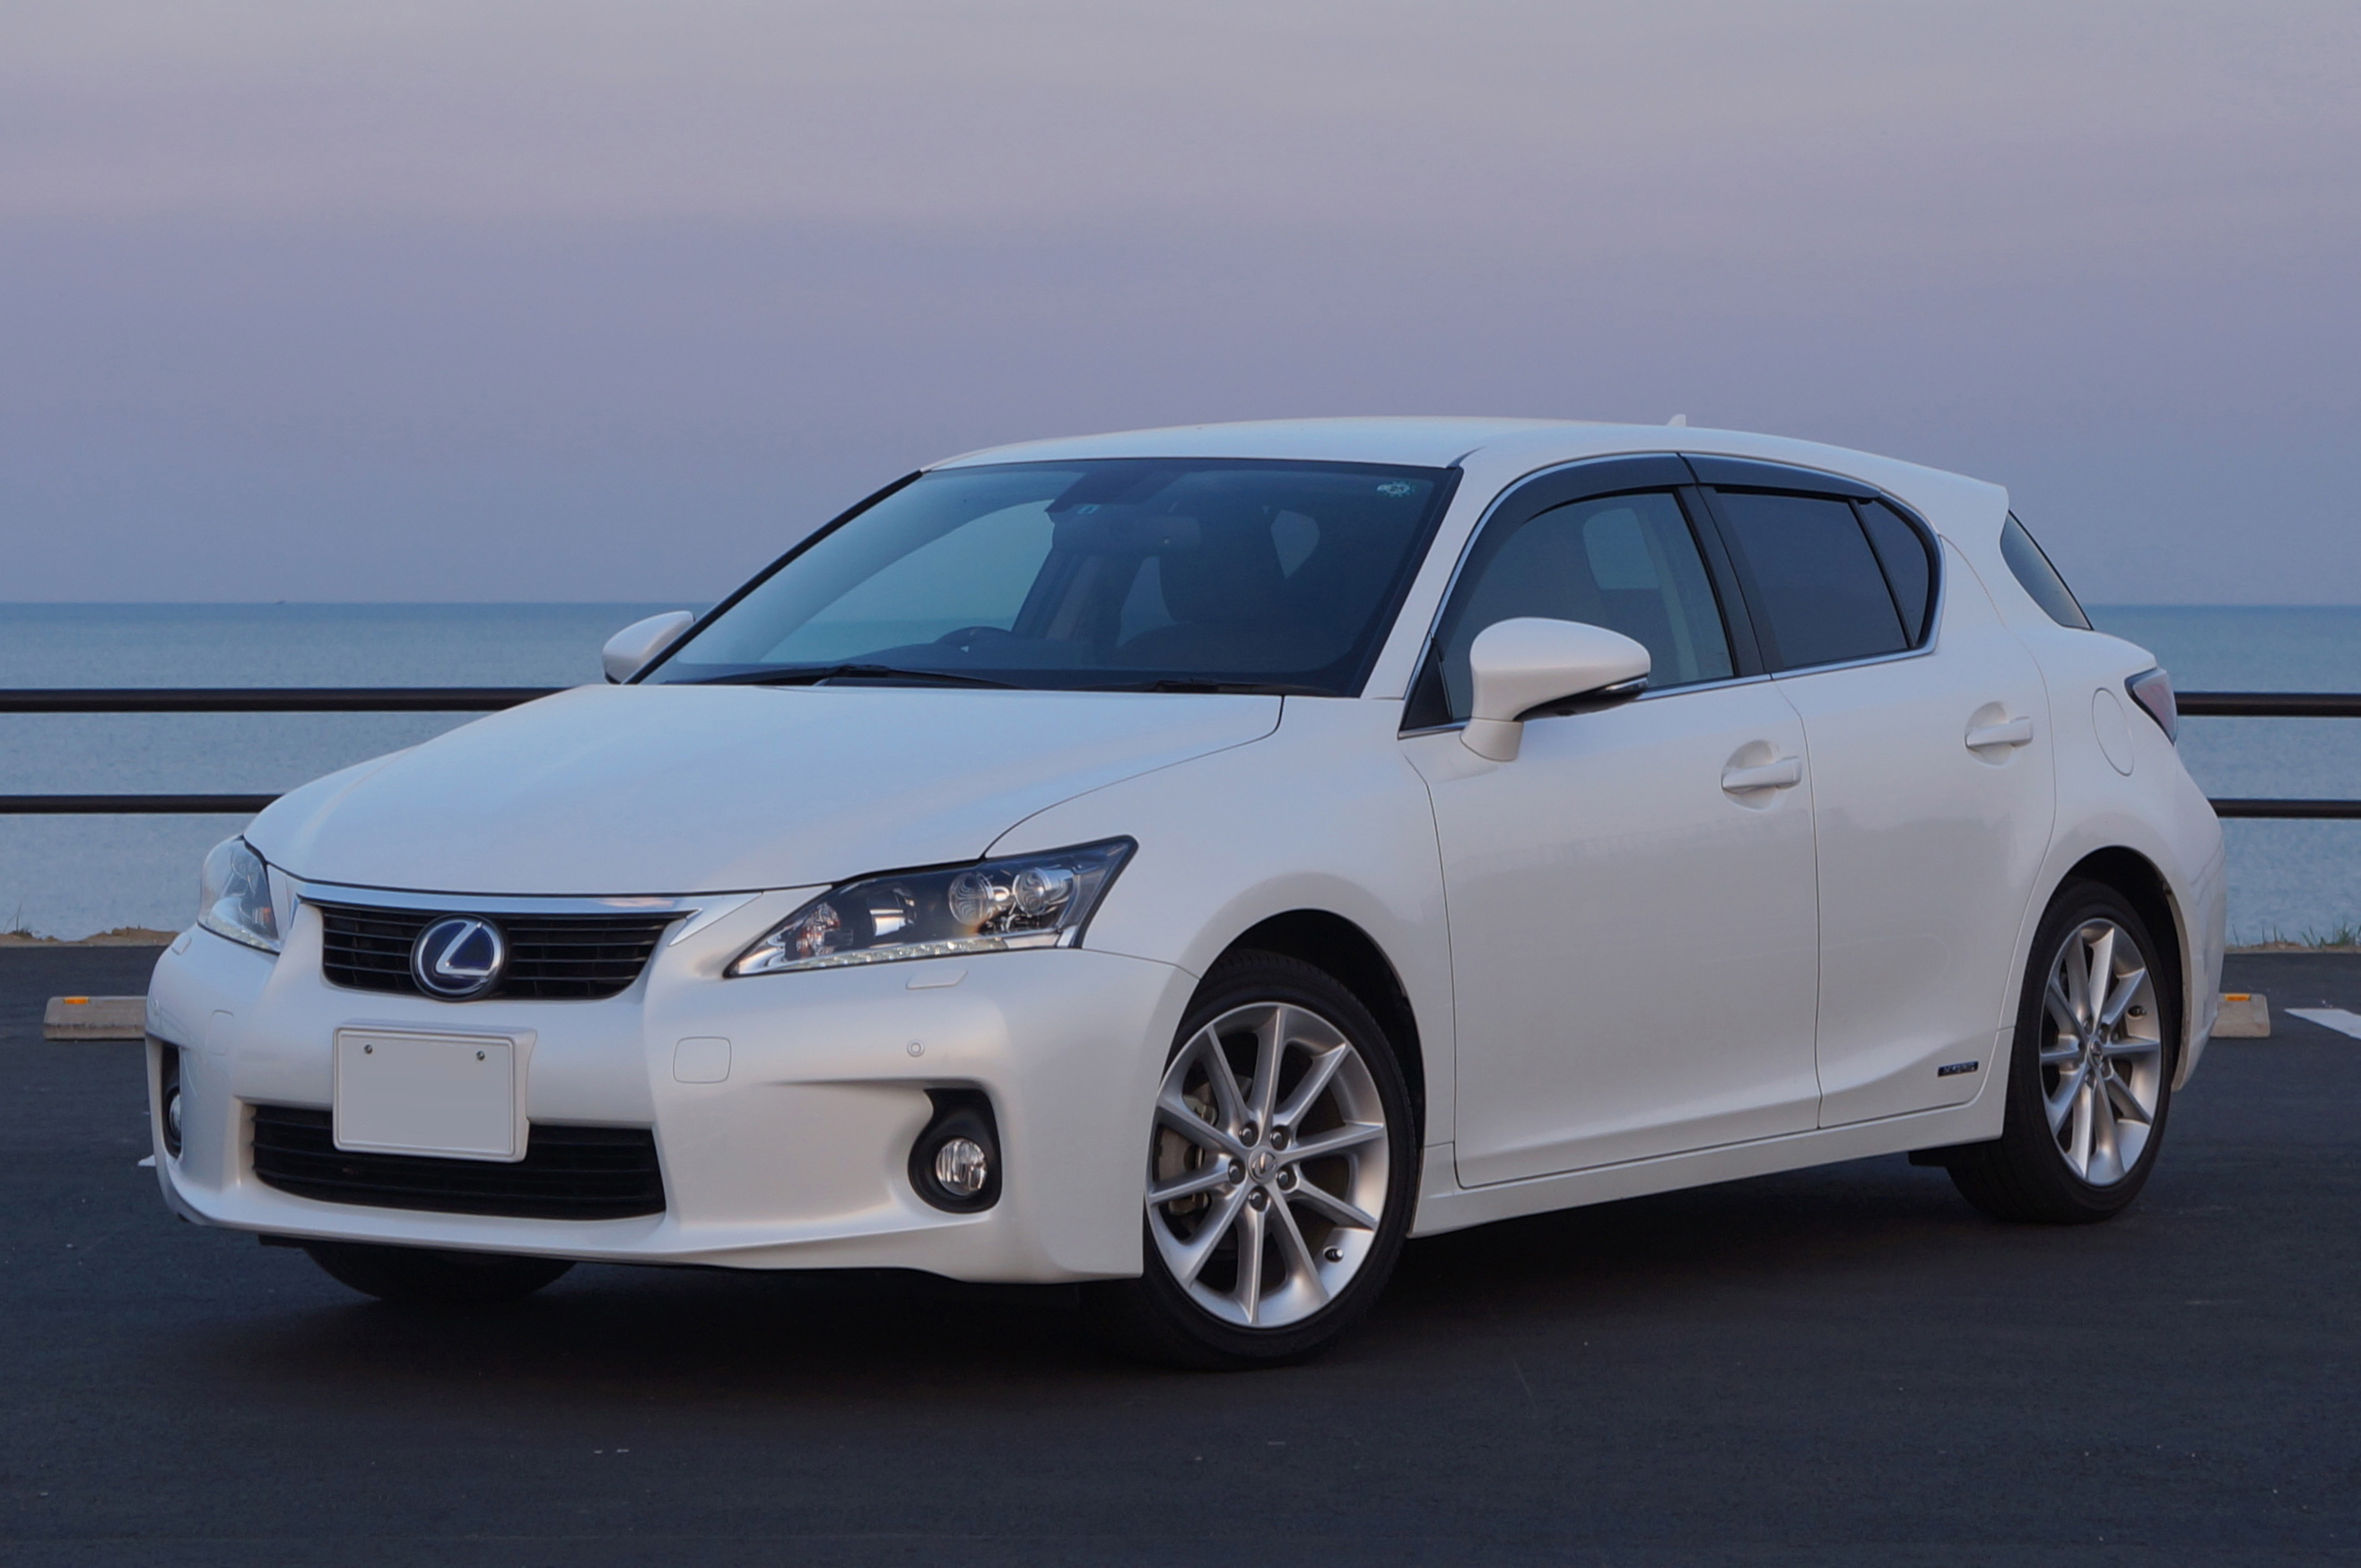 review automobiles car for motor trend auto is lexus first hd intended test